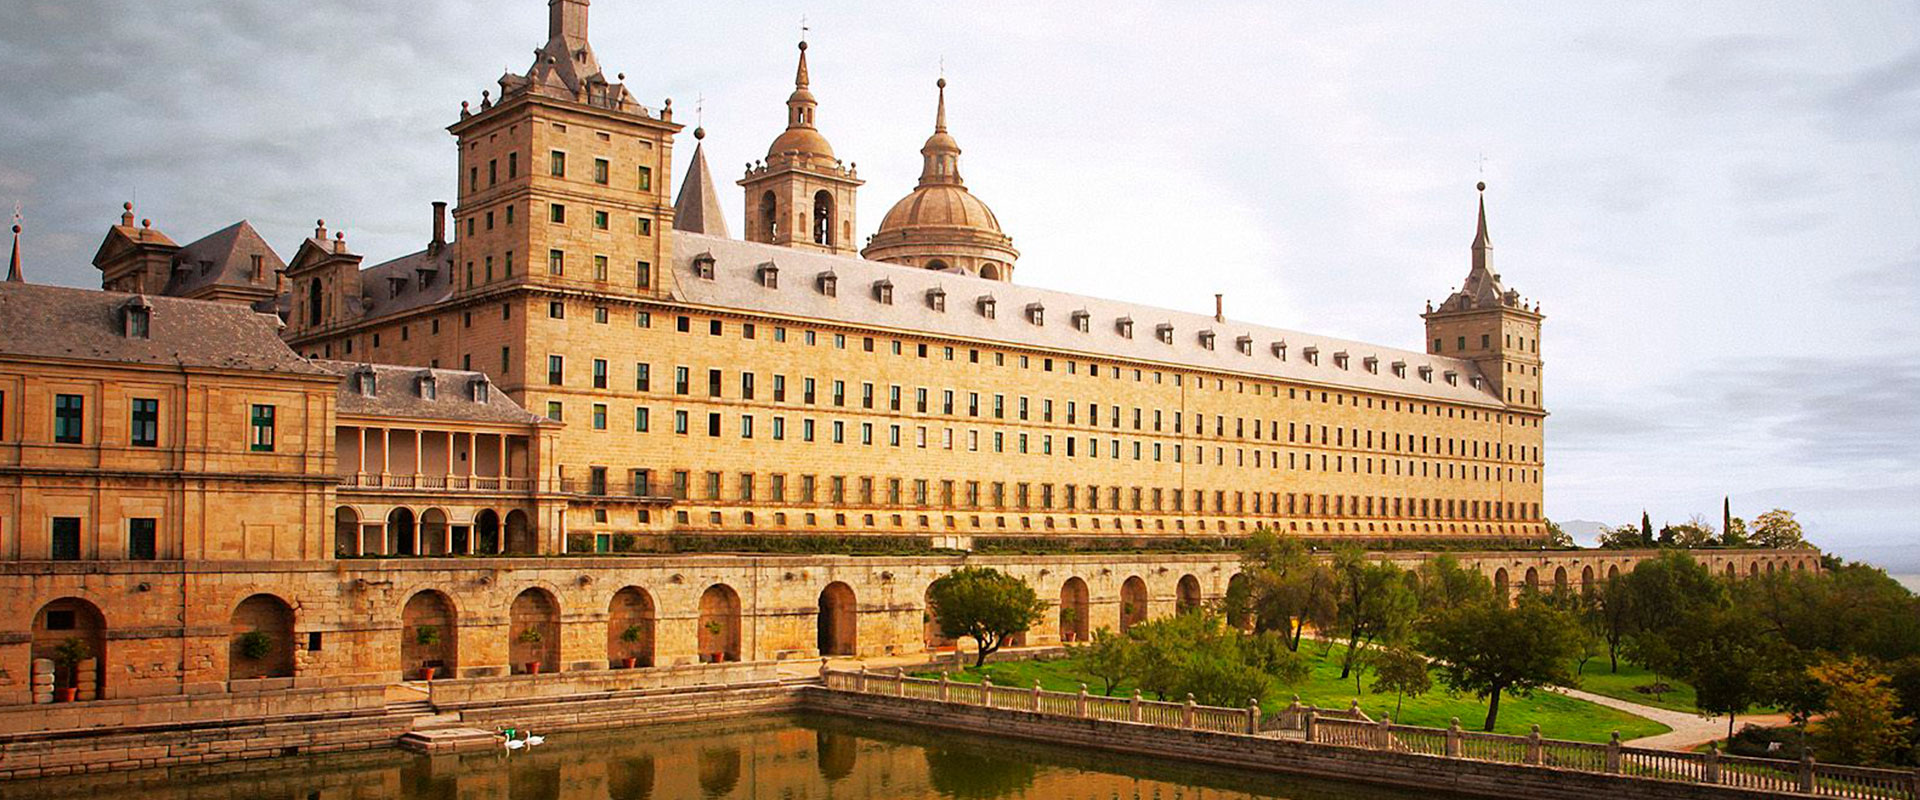 Tour Madrid de Reyes que incluye una visita al Palacio Real de Madrid y al Escorial - Madrid Experience